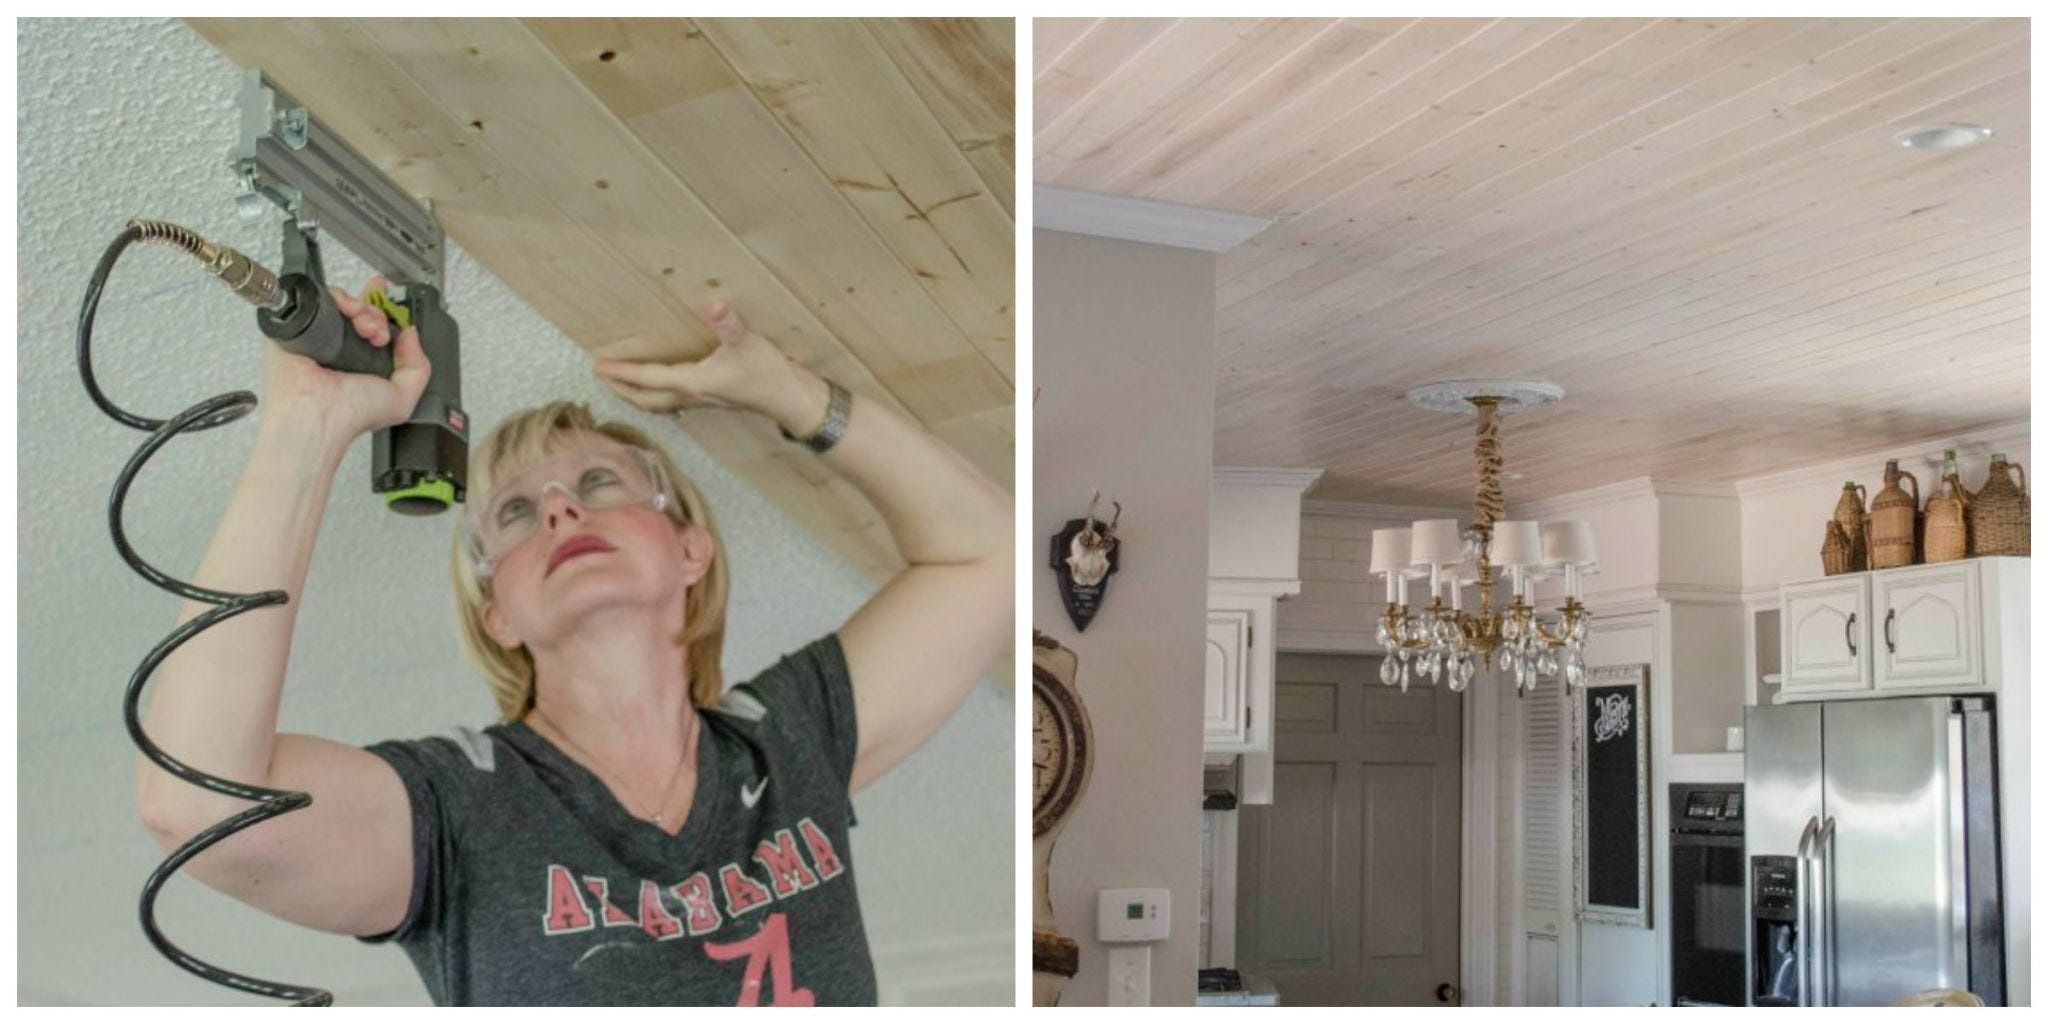 Ceiling, Wall, Room, Photography, Interior design, House, Selfie, Plaster,